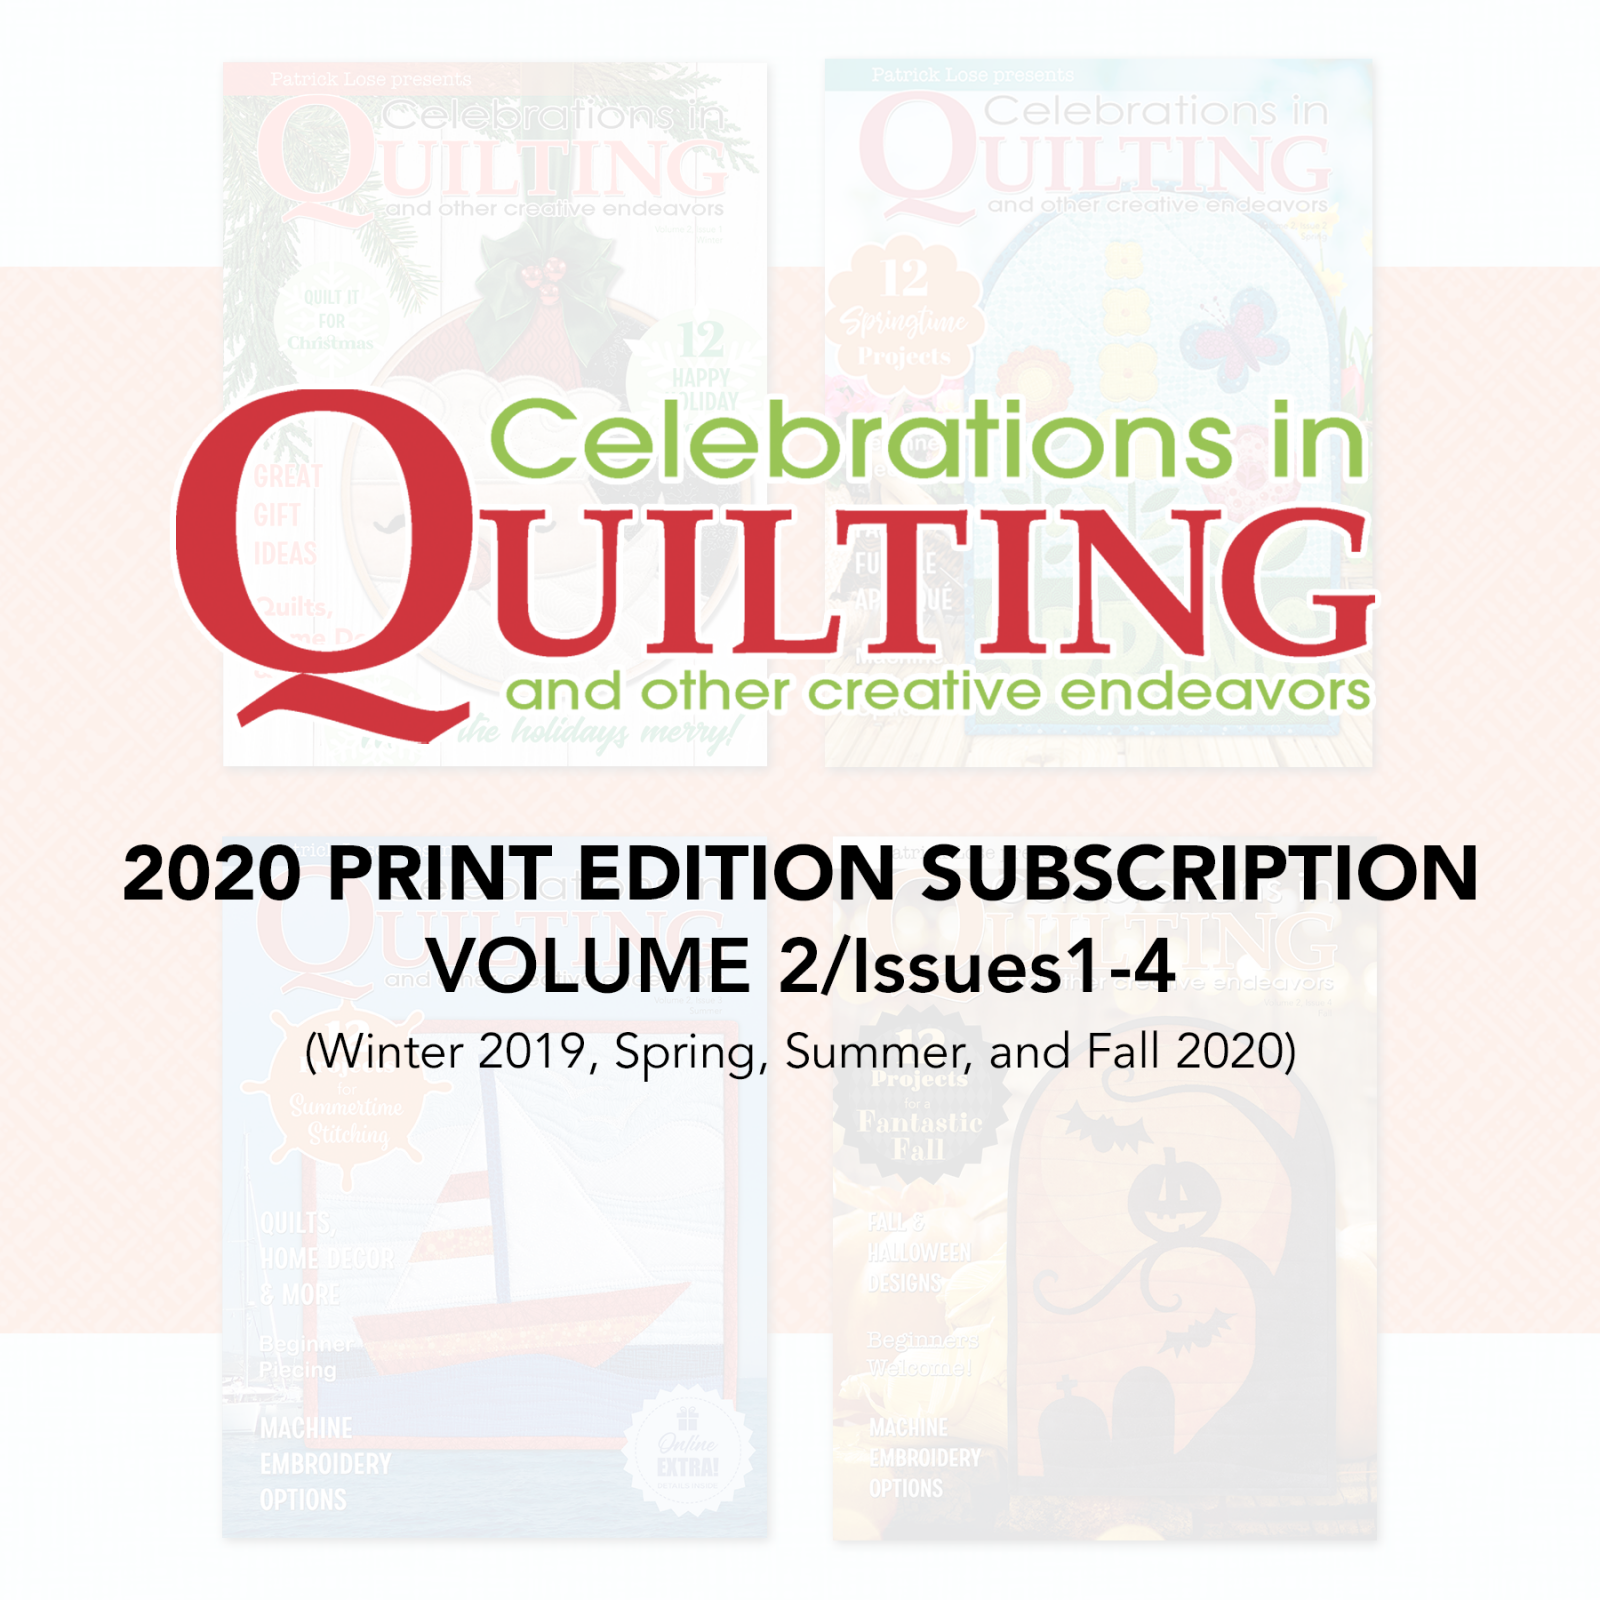 Celebrations in Quilting Volume 2 PRINT Subscription